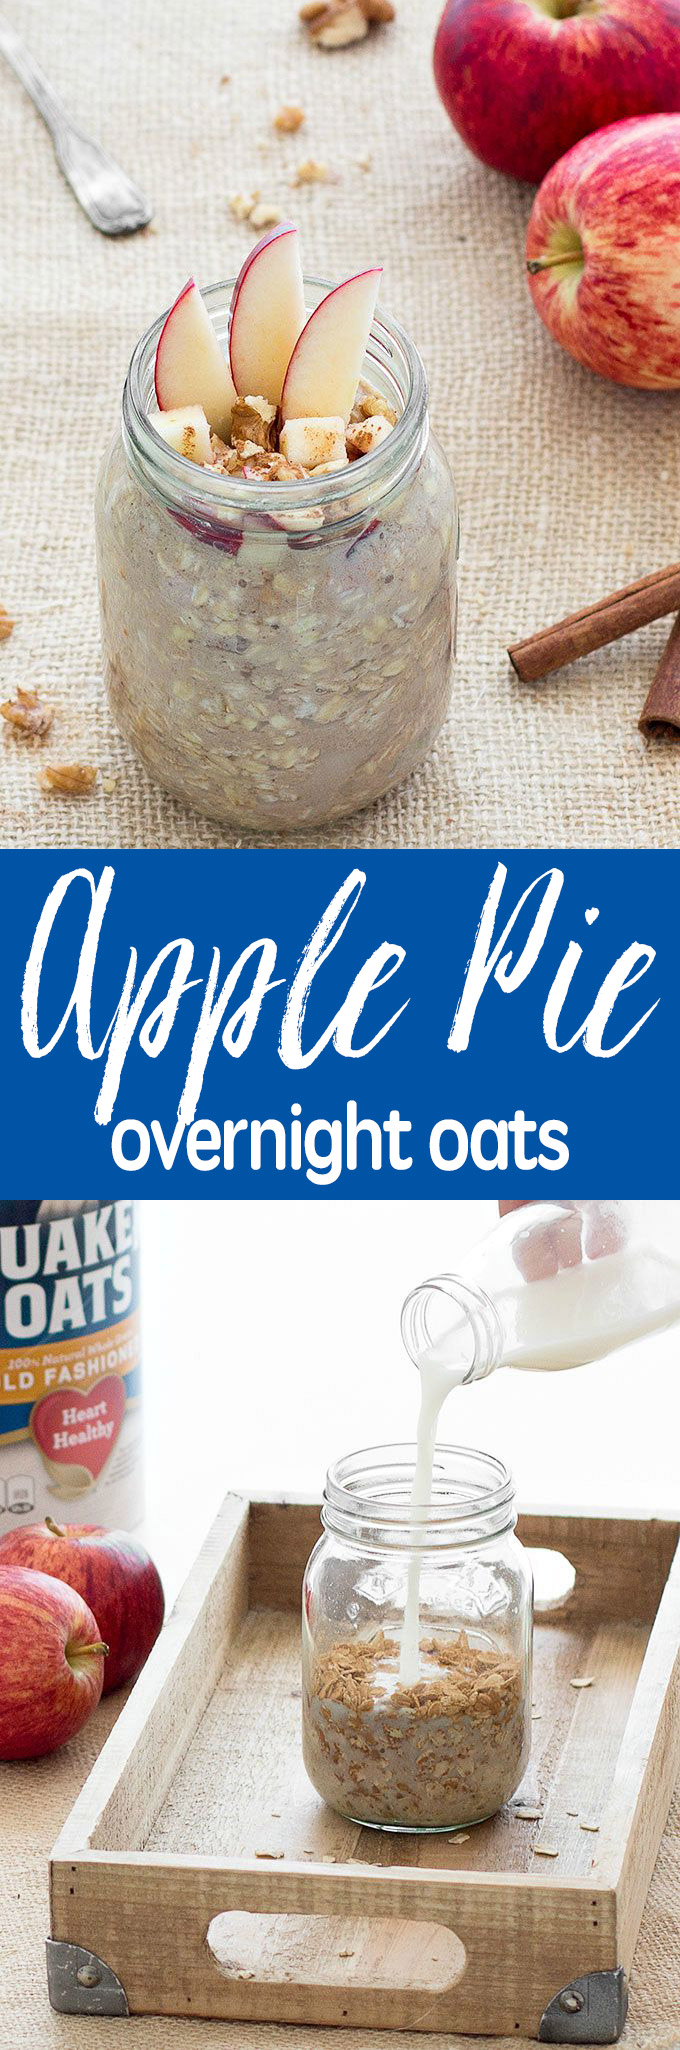 Apple Pie Overnight Oats - a breakfast that can be made ahead of time, comes together in less than 3 minutes and tastes just like a dessert